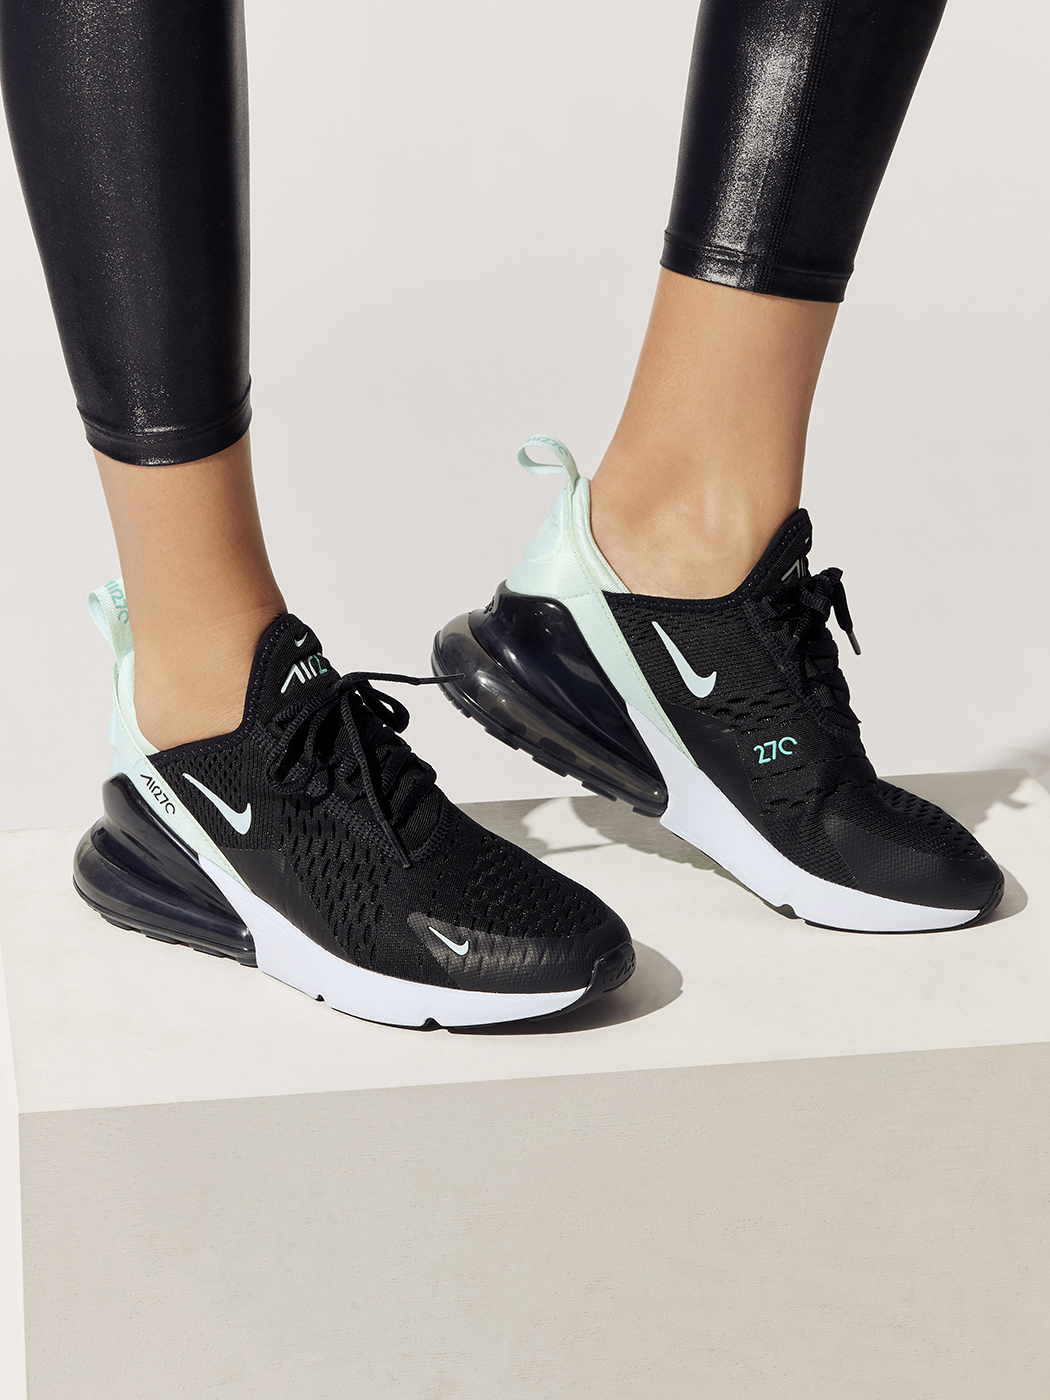 W Air Max 270 in Blackigloo hyper Turq white